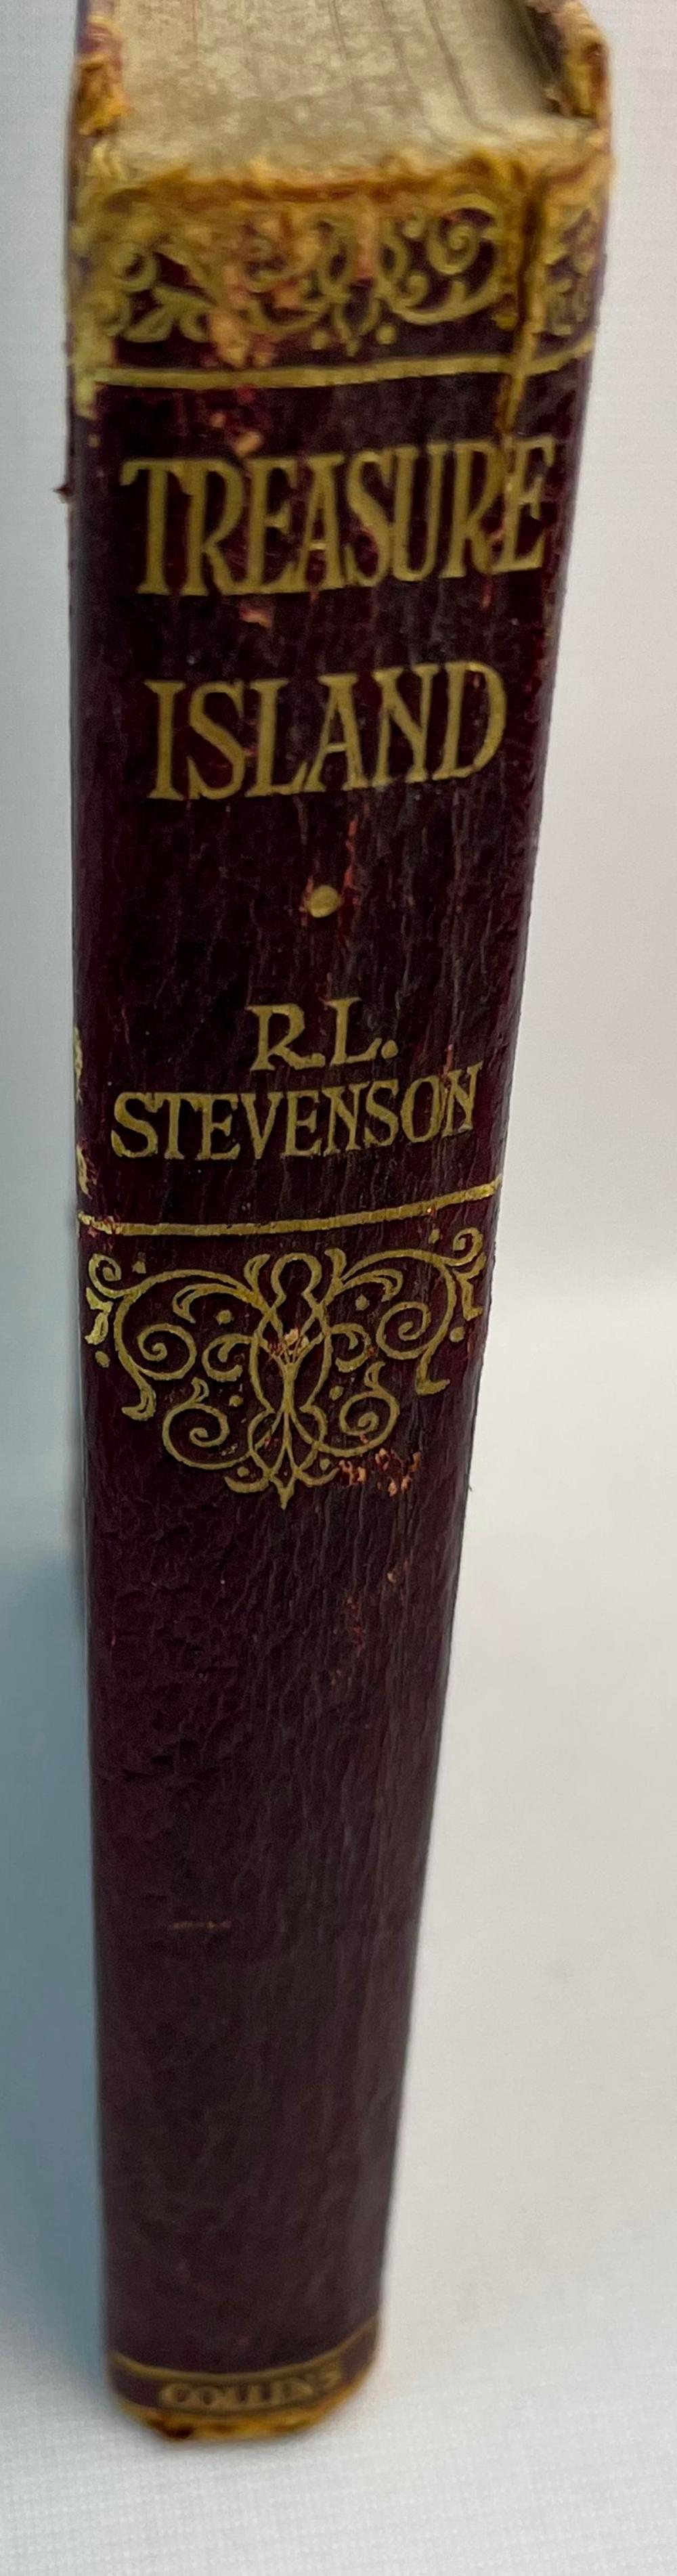 Treasure Island by Robert Louis Stevenson c. 1890 ILLUSTRATED